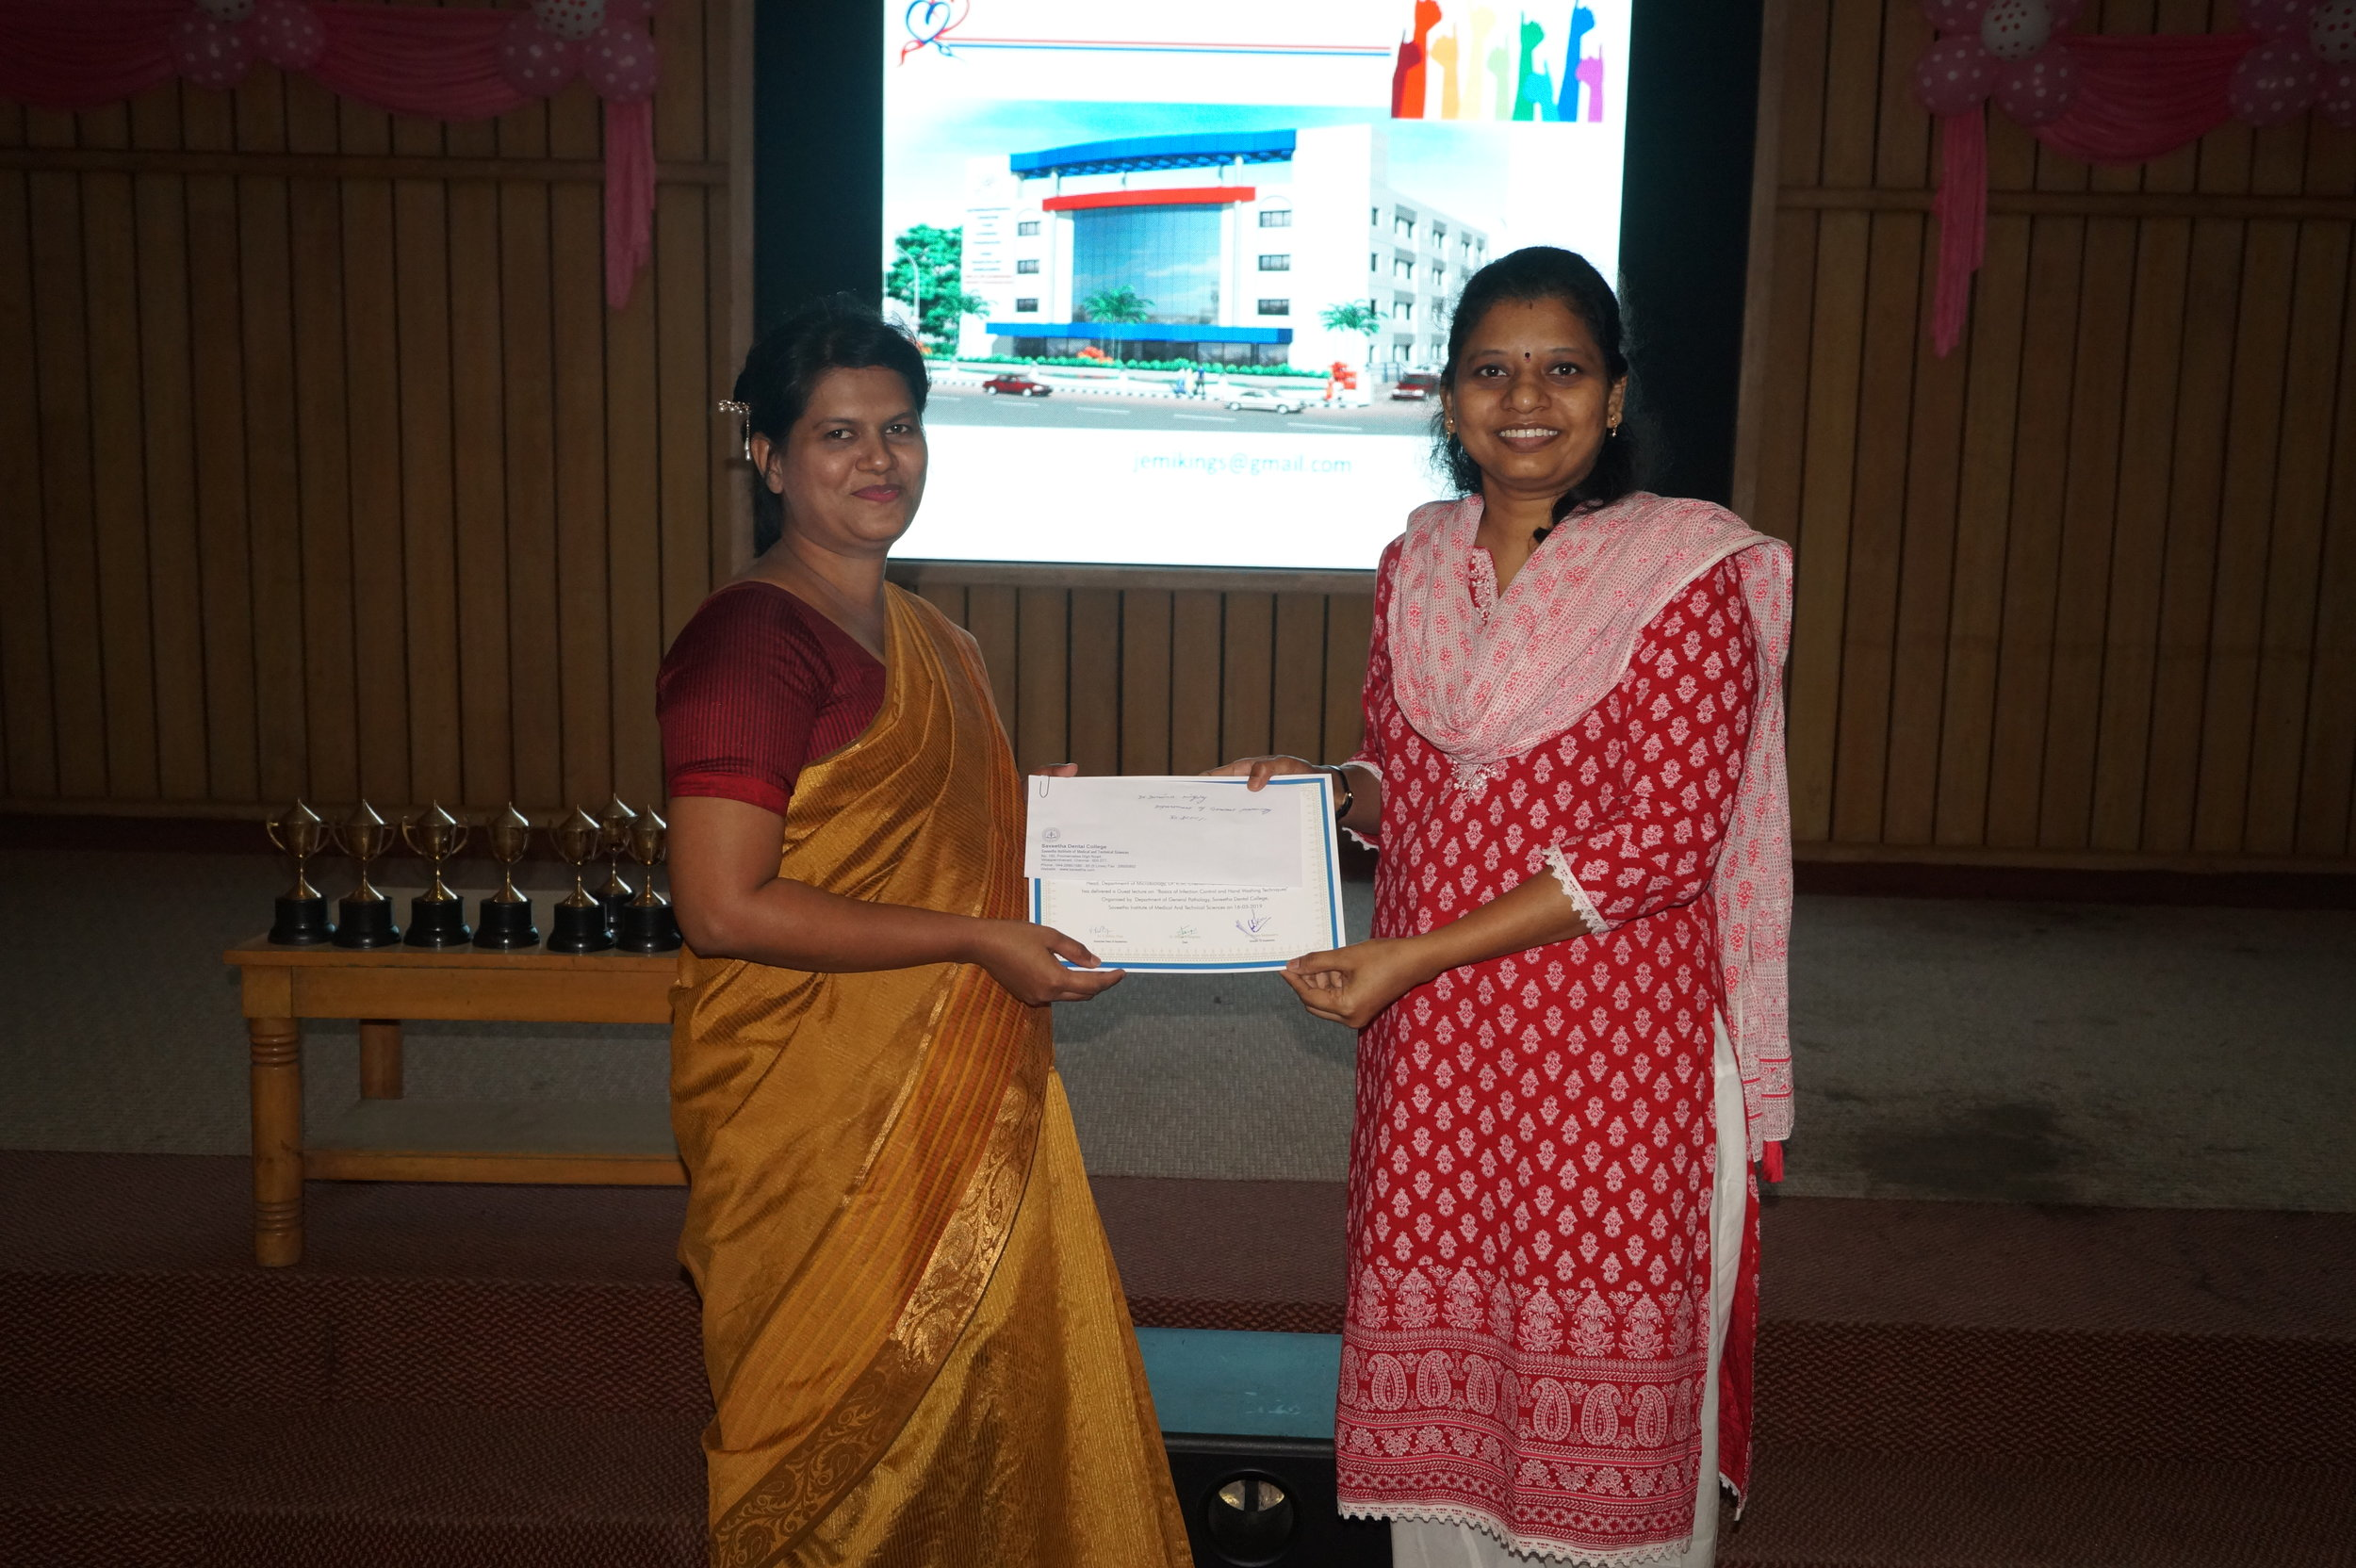 Dr. Jemima Kingsley felicitated by Dr. M.P.Brundha